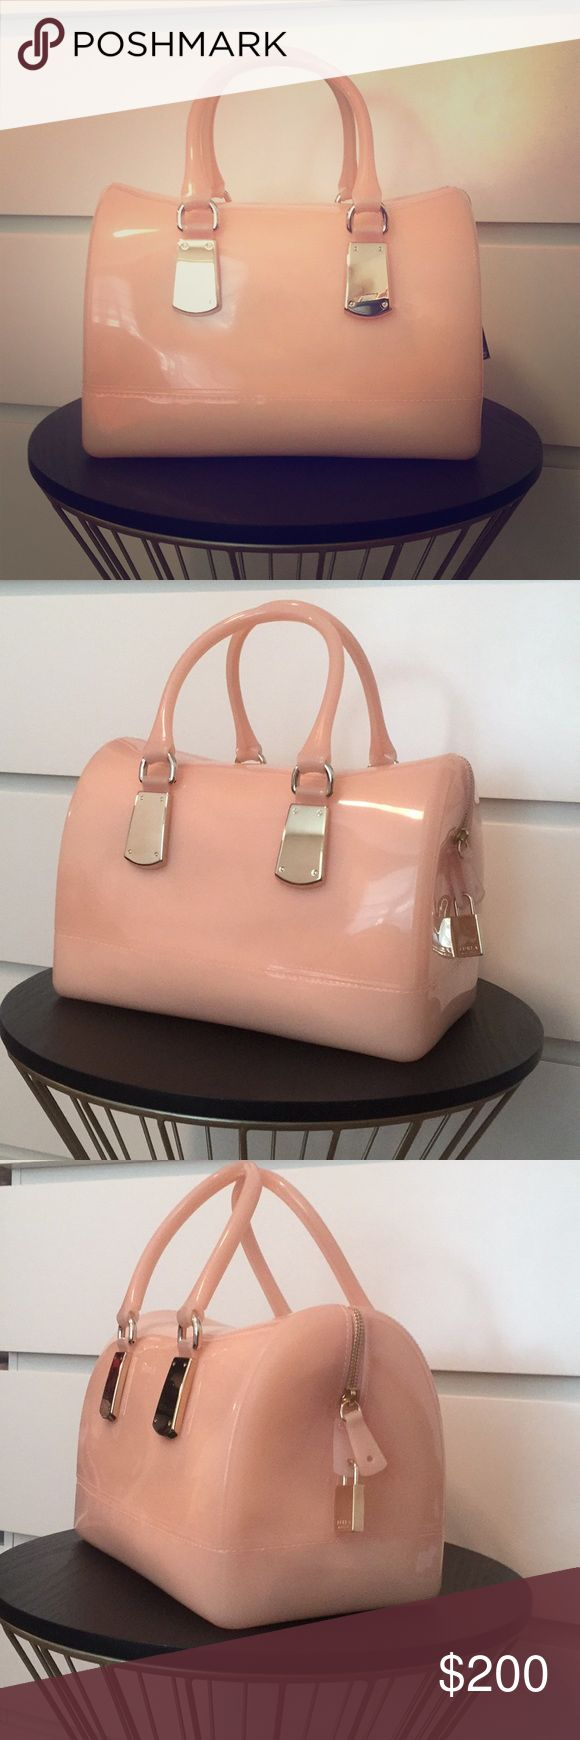 Furla Candy bag Beautiful Furla Candy bag in Magnolia color.   -NWT and dust bag -Material PVC & metal hardware -Made in Italy Furla Bags Satchels